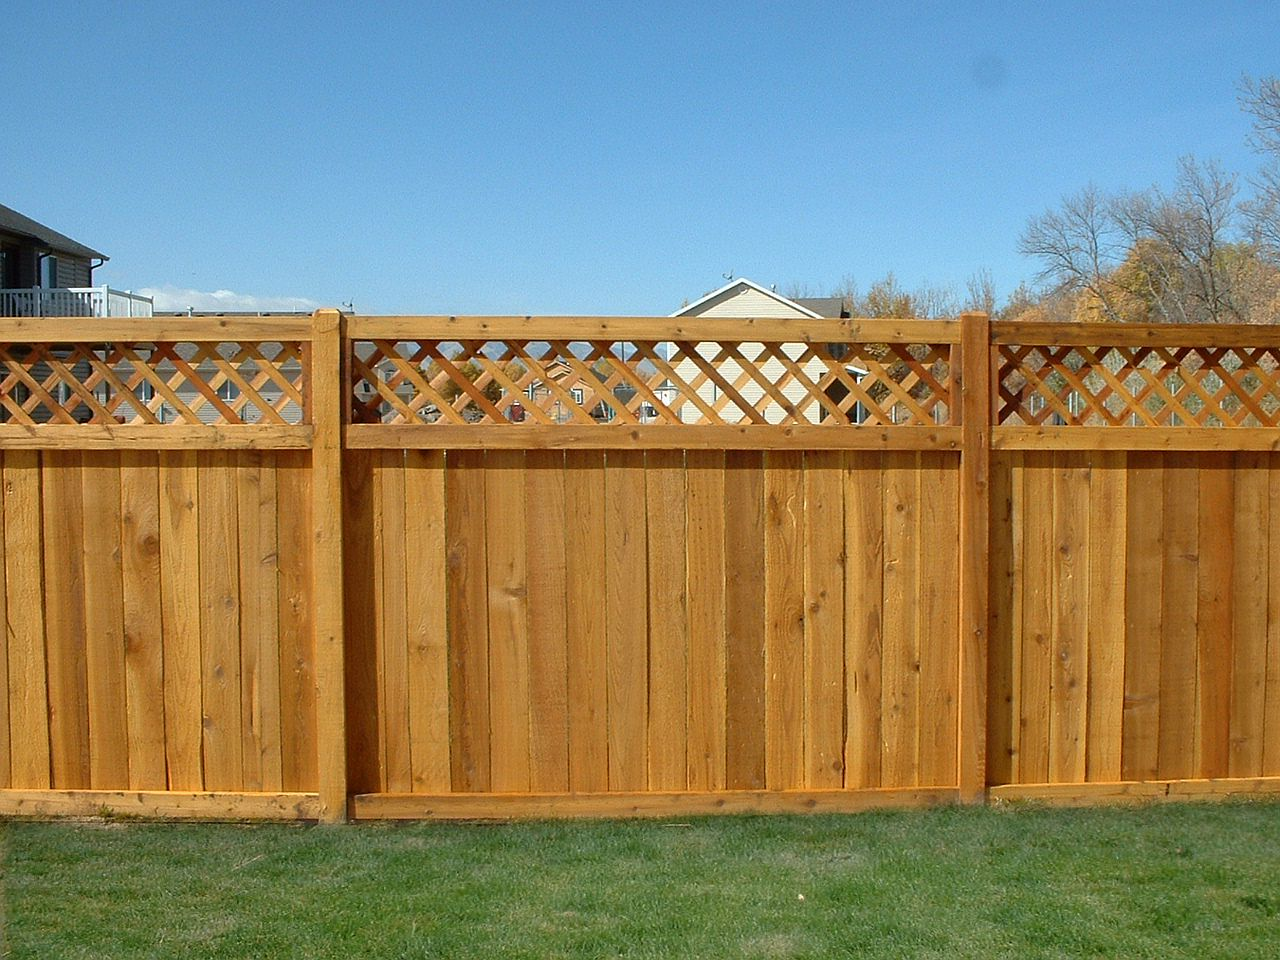 Channel Fence specializes in providing residential and commercial customers with fence contracting services.